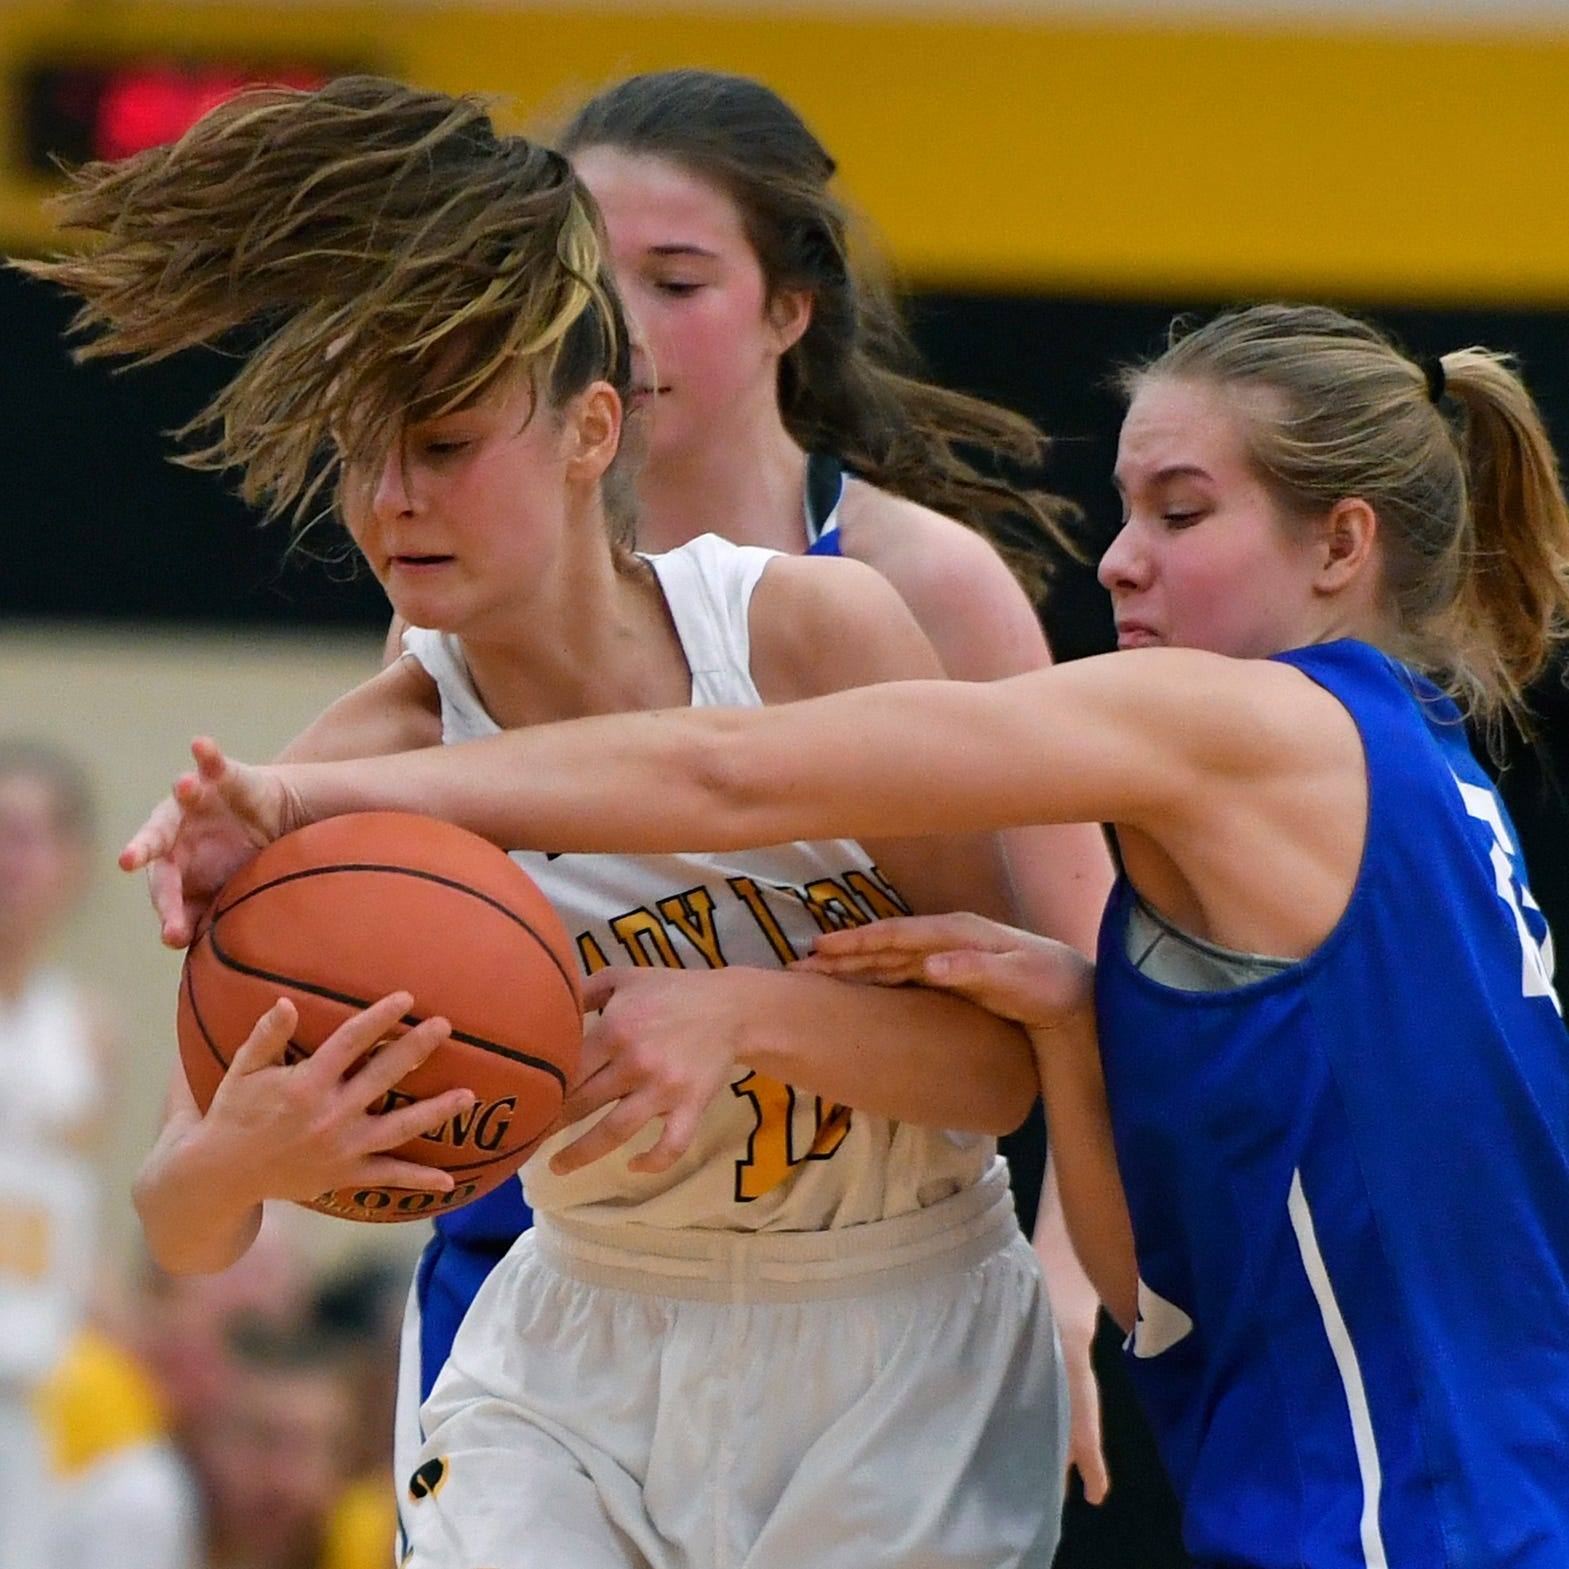 PREP SPORTS ROUNDUP, MONDAY, DEC. 17: Spring Grove girls now alone in first in Division I